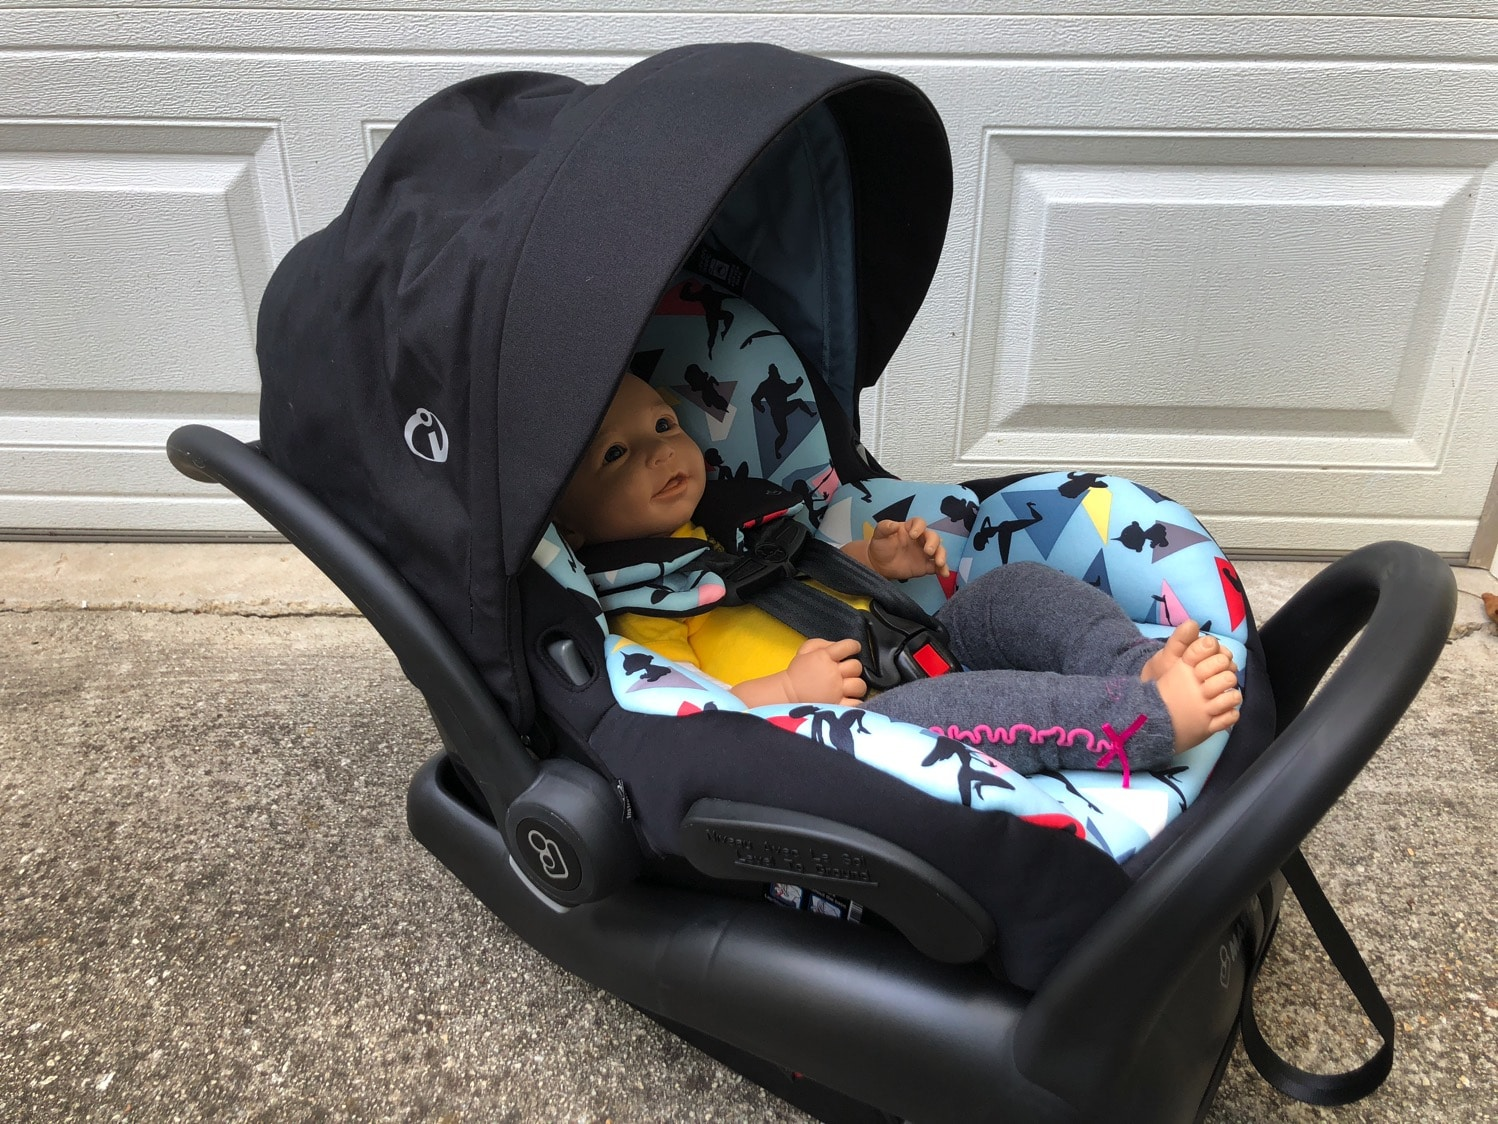 Car Seat Stroller Travel System Reviews Incredibles 2 Limited Edition Disney Baby Stroller Adorra